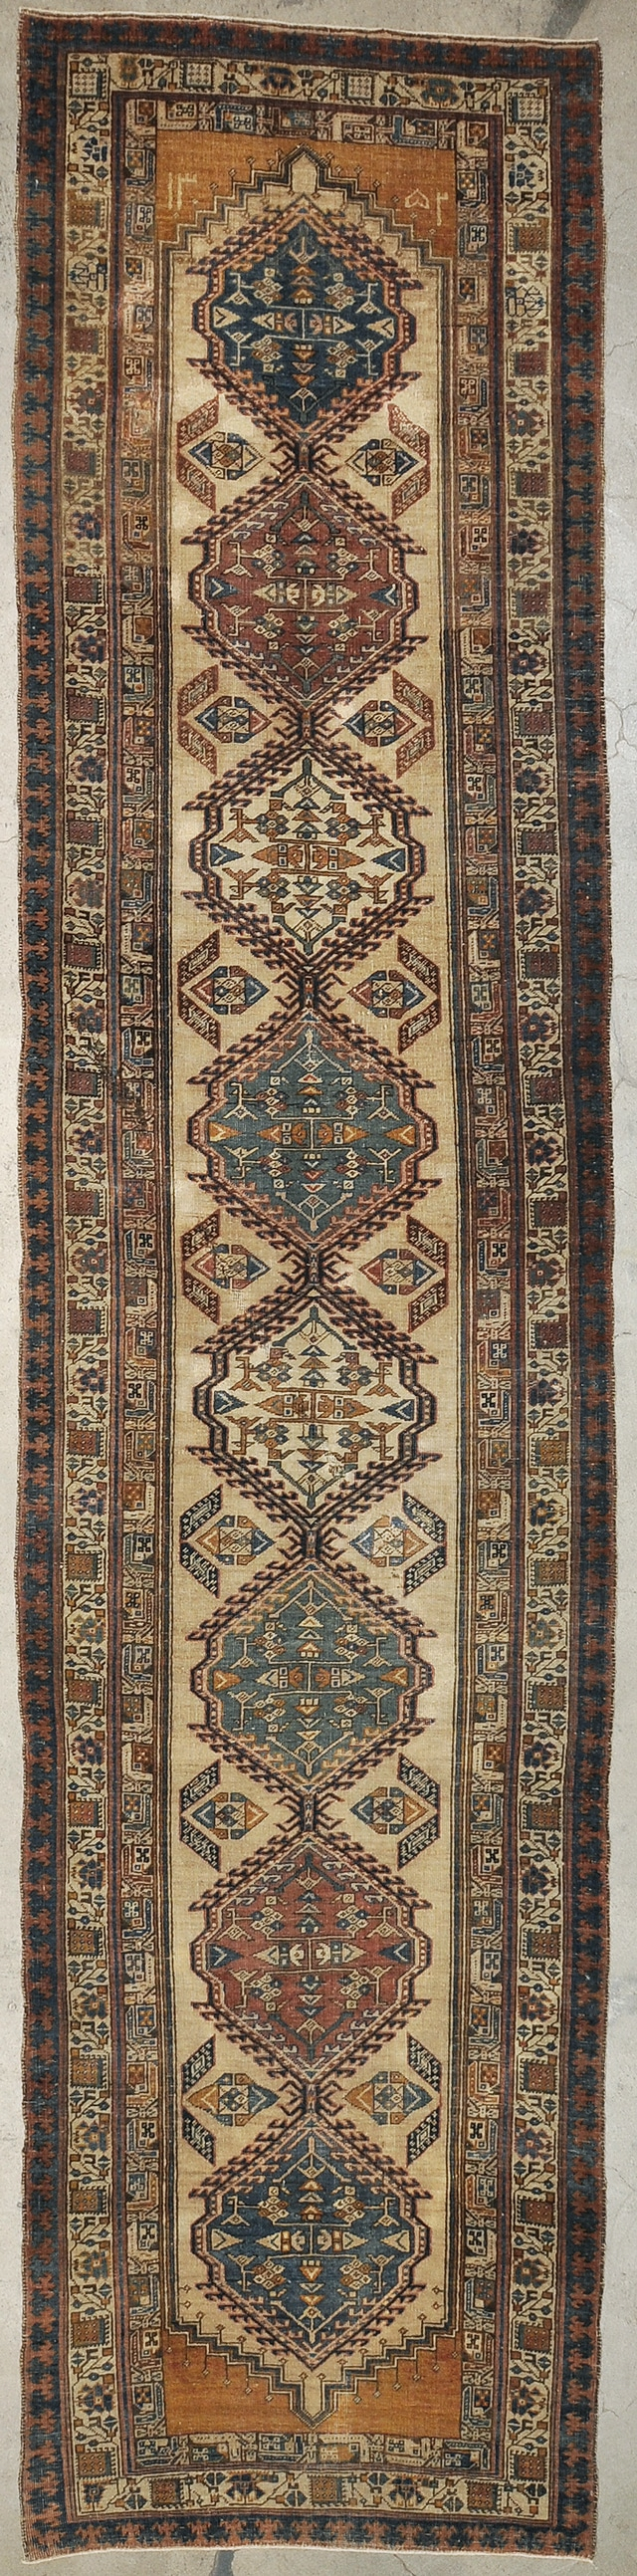 Antique Serab rugs and more oriental carpet 29875-